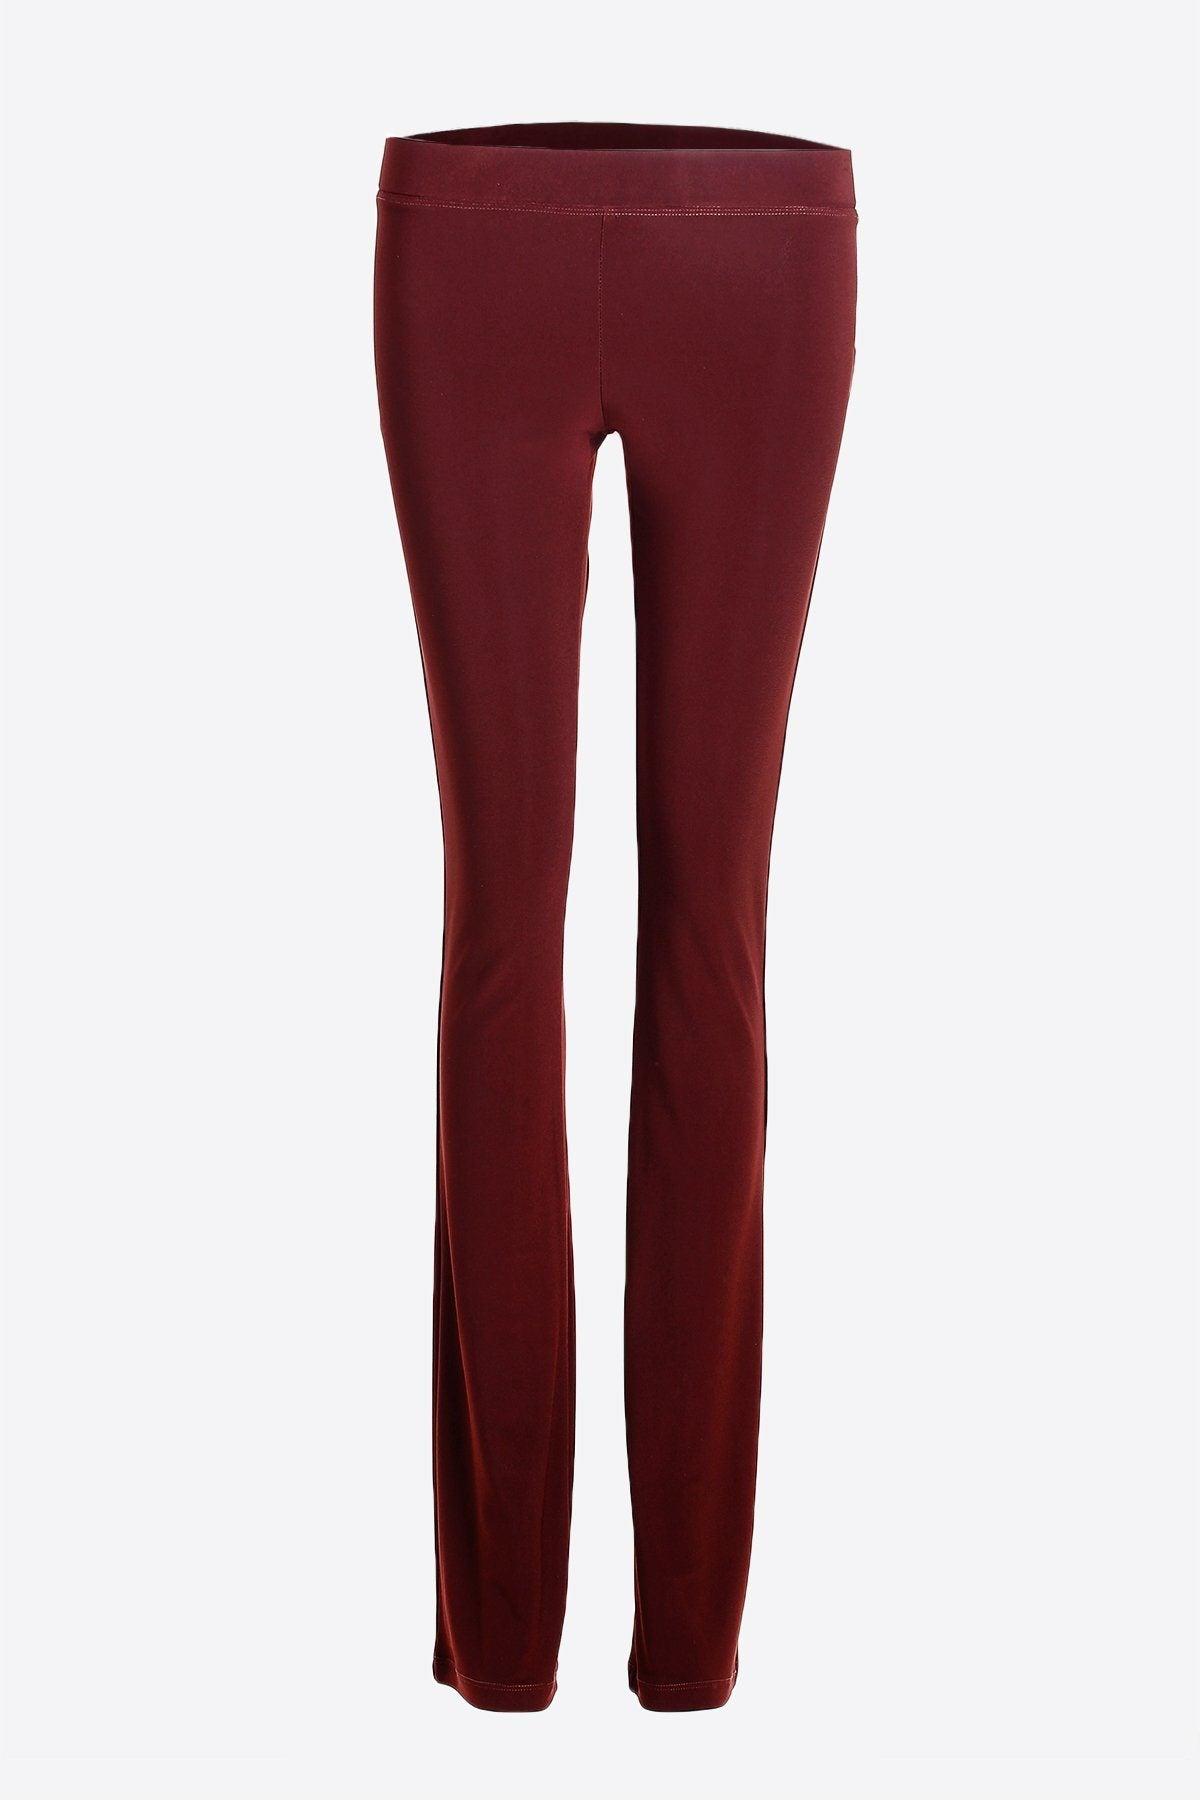 Slim Boot Leg Pants - Women's Clothing -ROSARINI